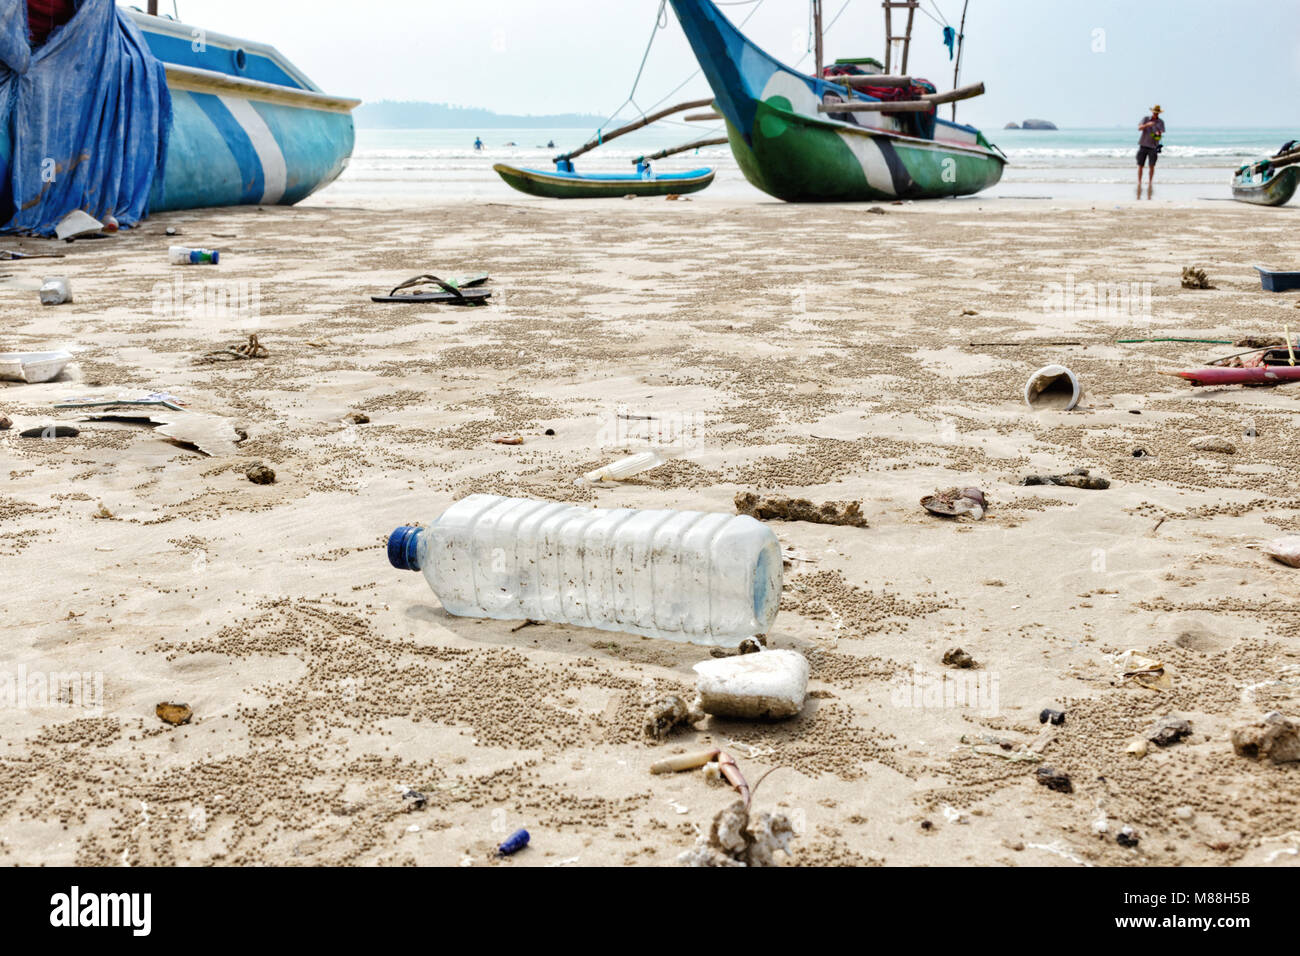 Close up empty used plastic bottle and other waste thrown out at the sea beach on background is fishing boats. - Stock Image